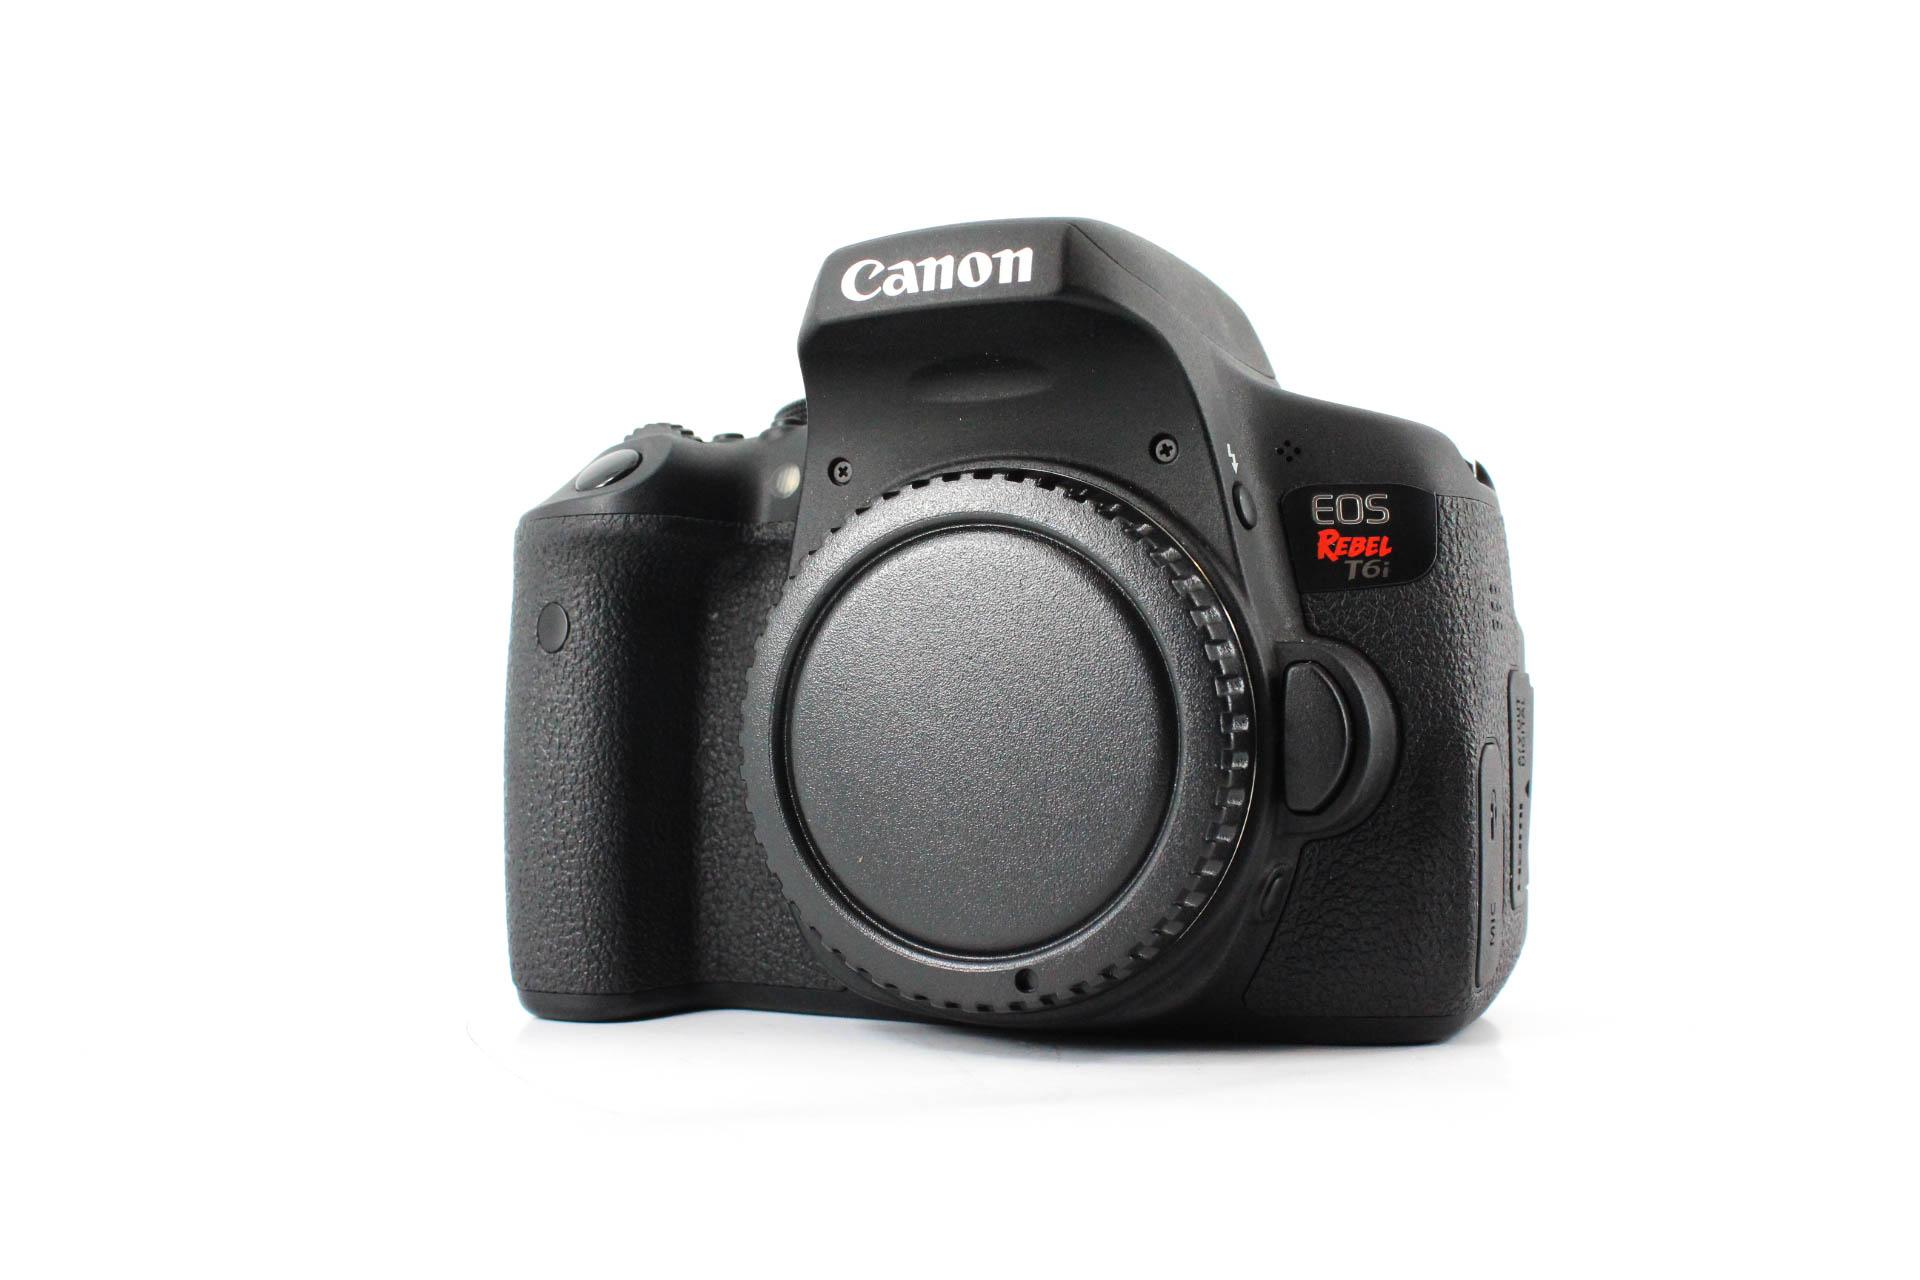 canon t6i front image